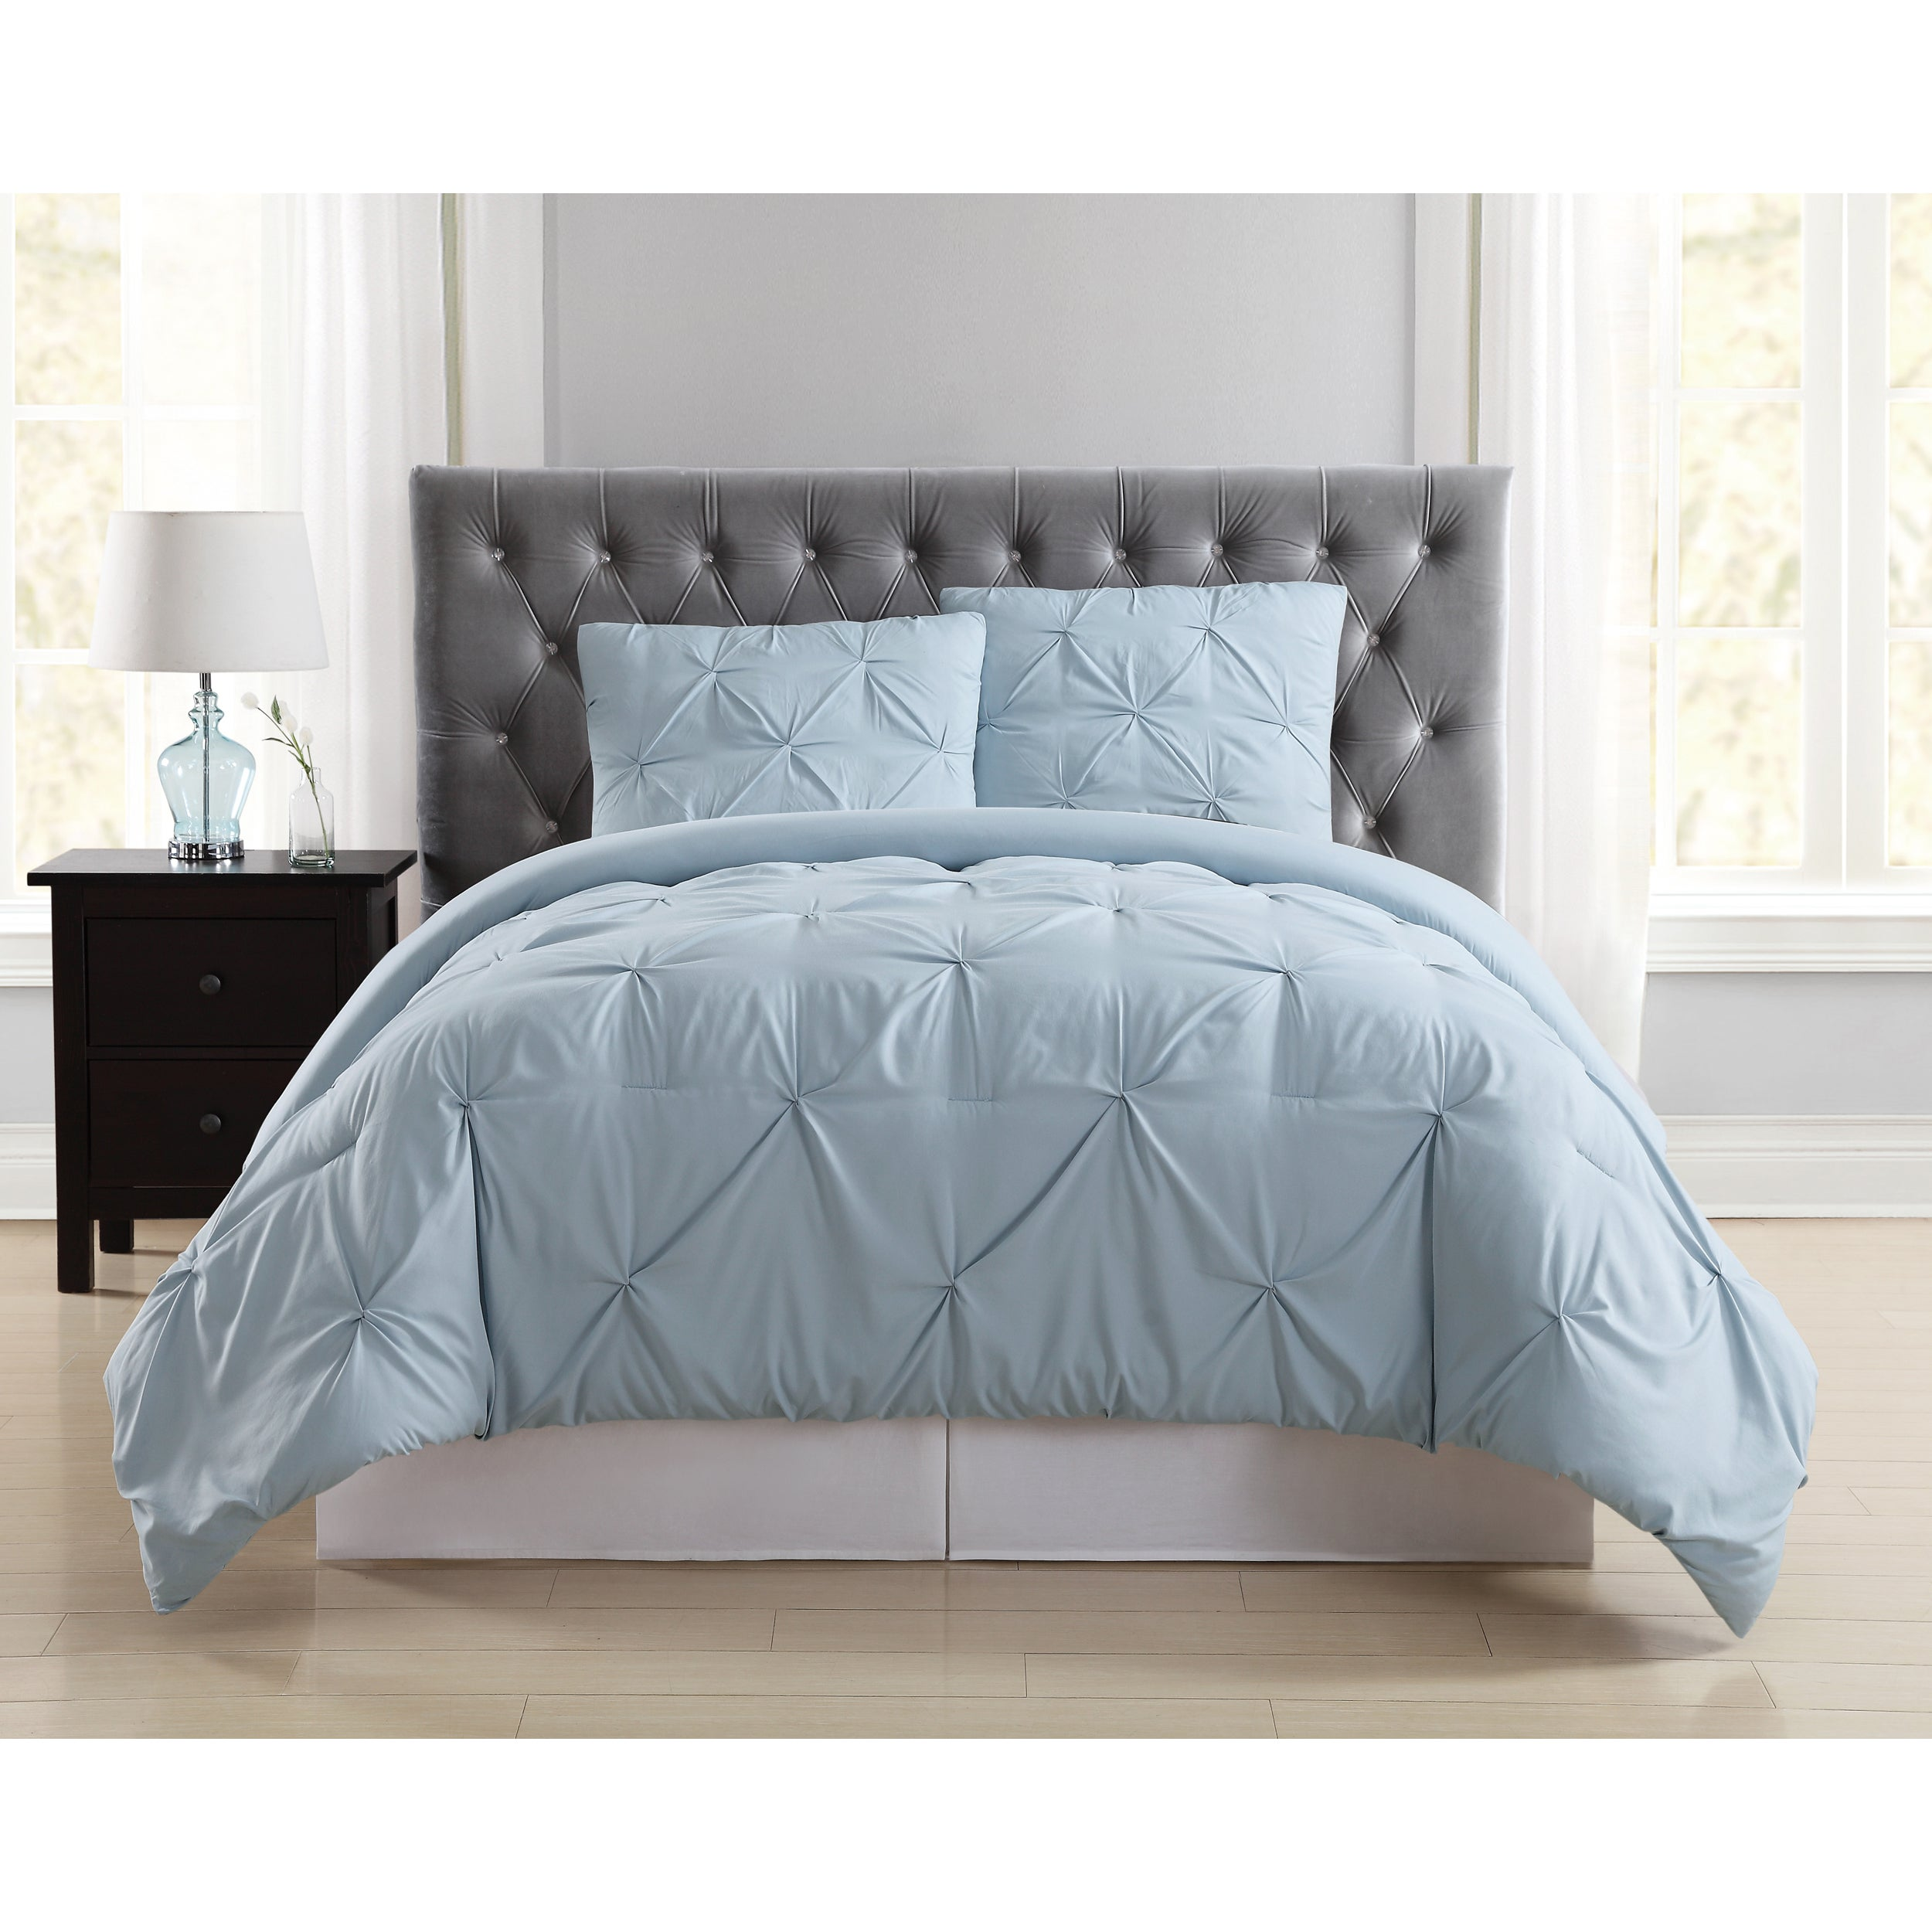 blue image bedspread of king design size by cream signature twin comforter bedding xl sets lace set rsrs